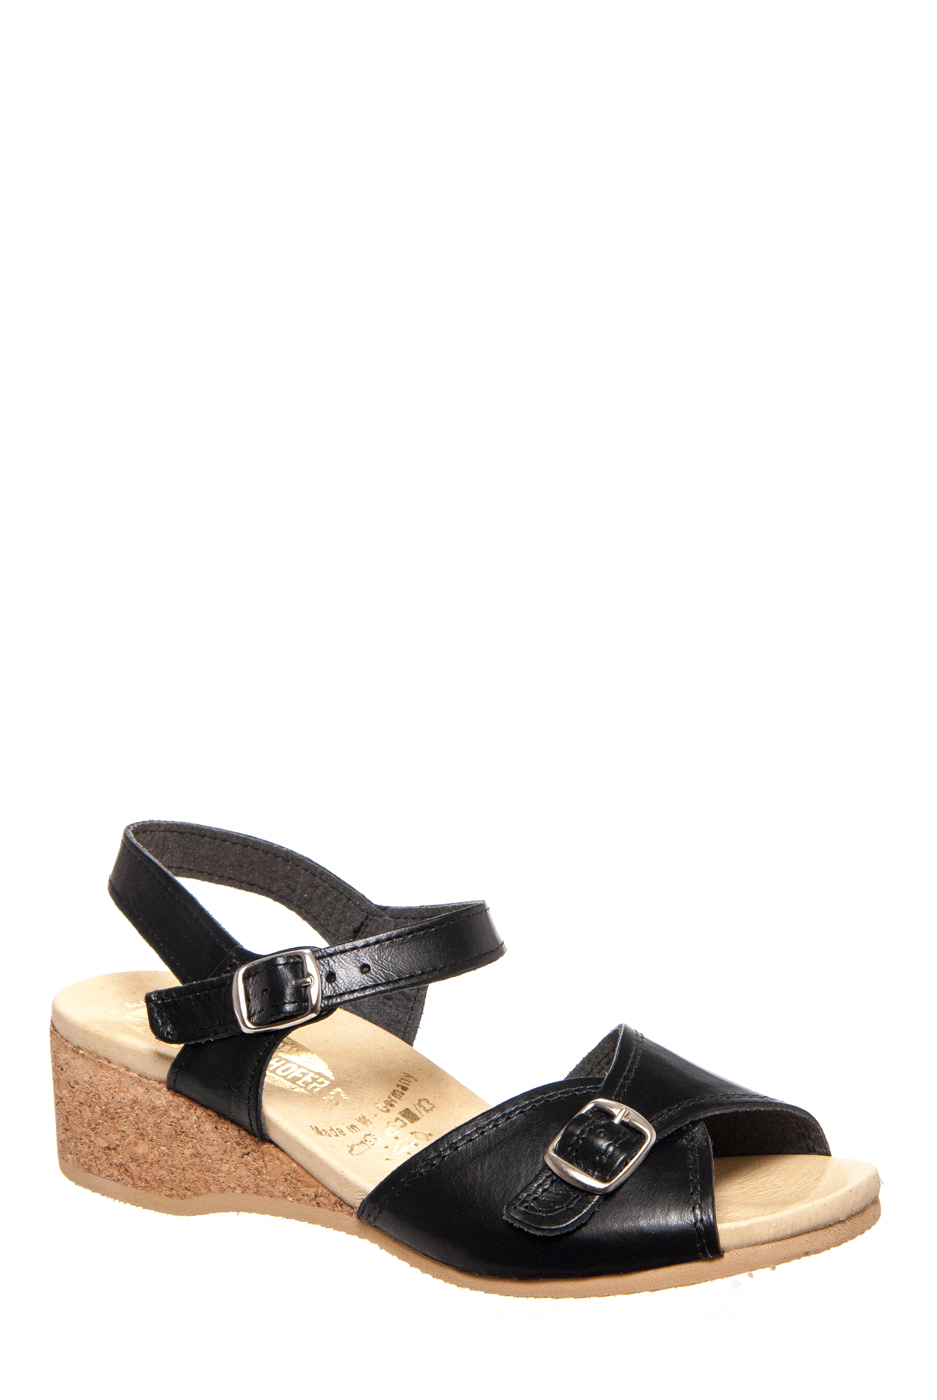 Worishofer 711 Low Wedge Sandals